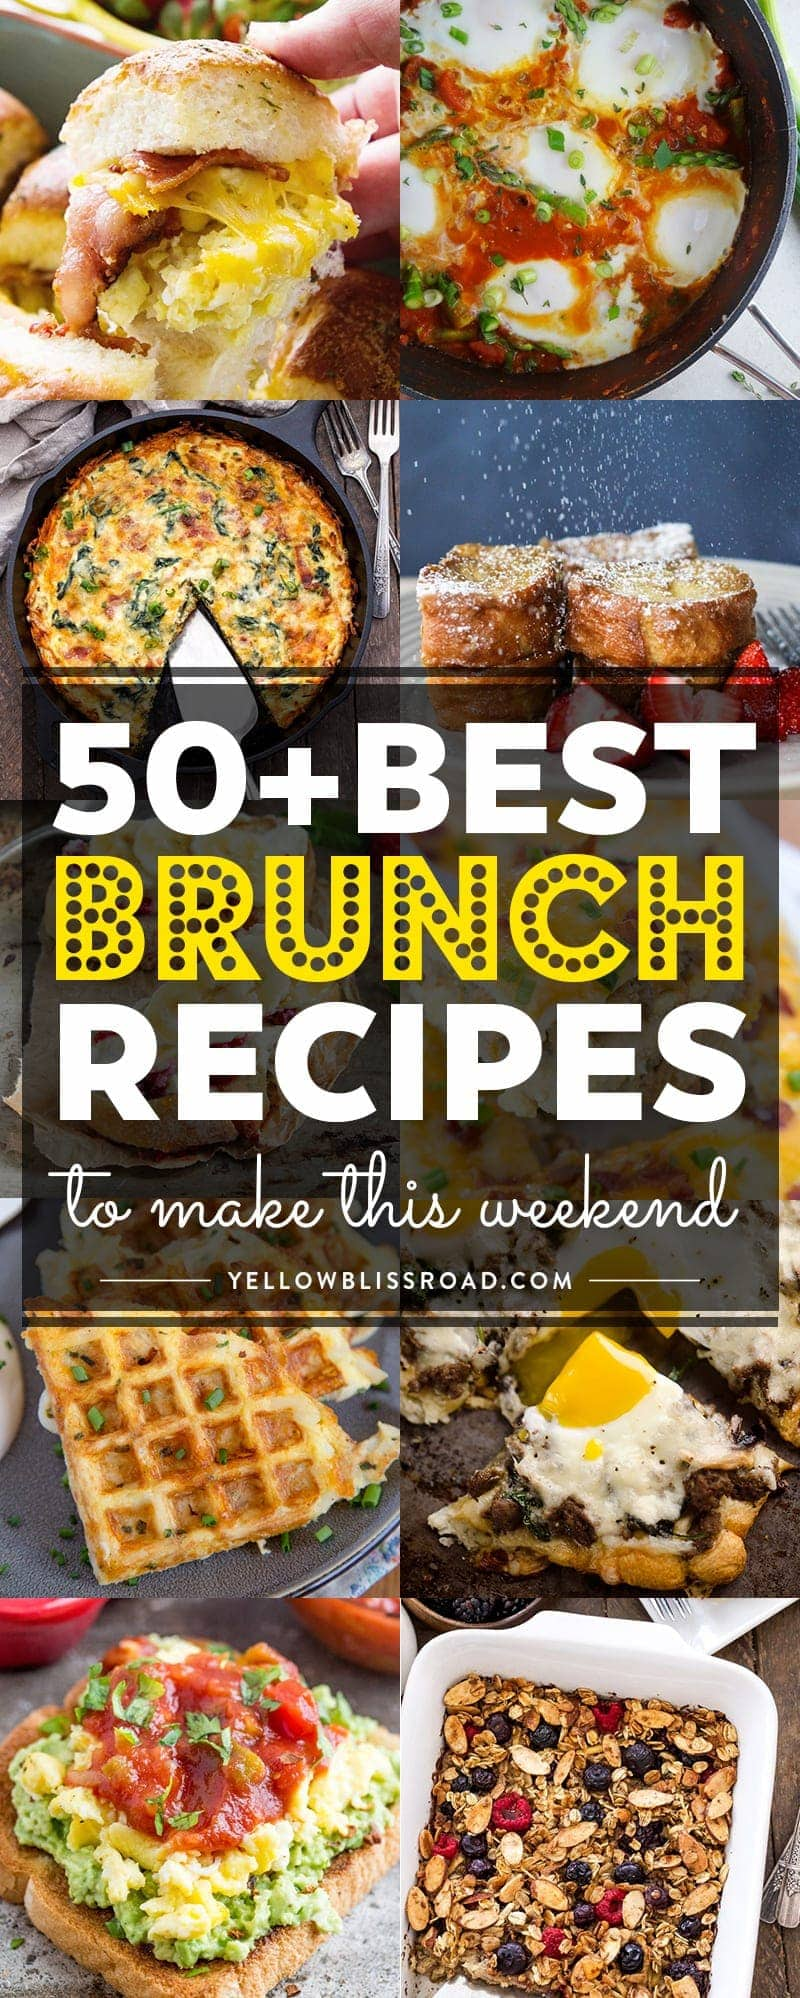 Brunch Best 50 Of The Best Brunch Recipes To Make This Weekend